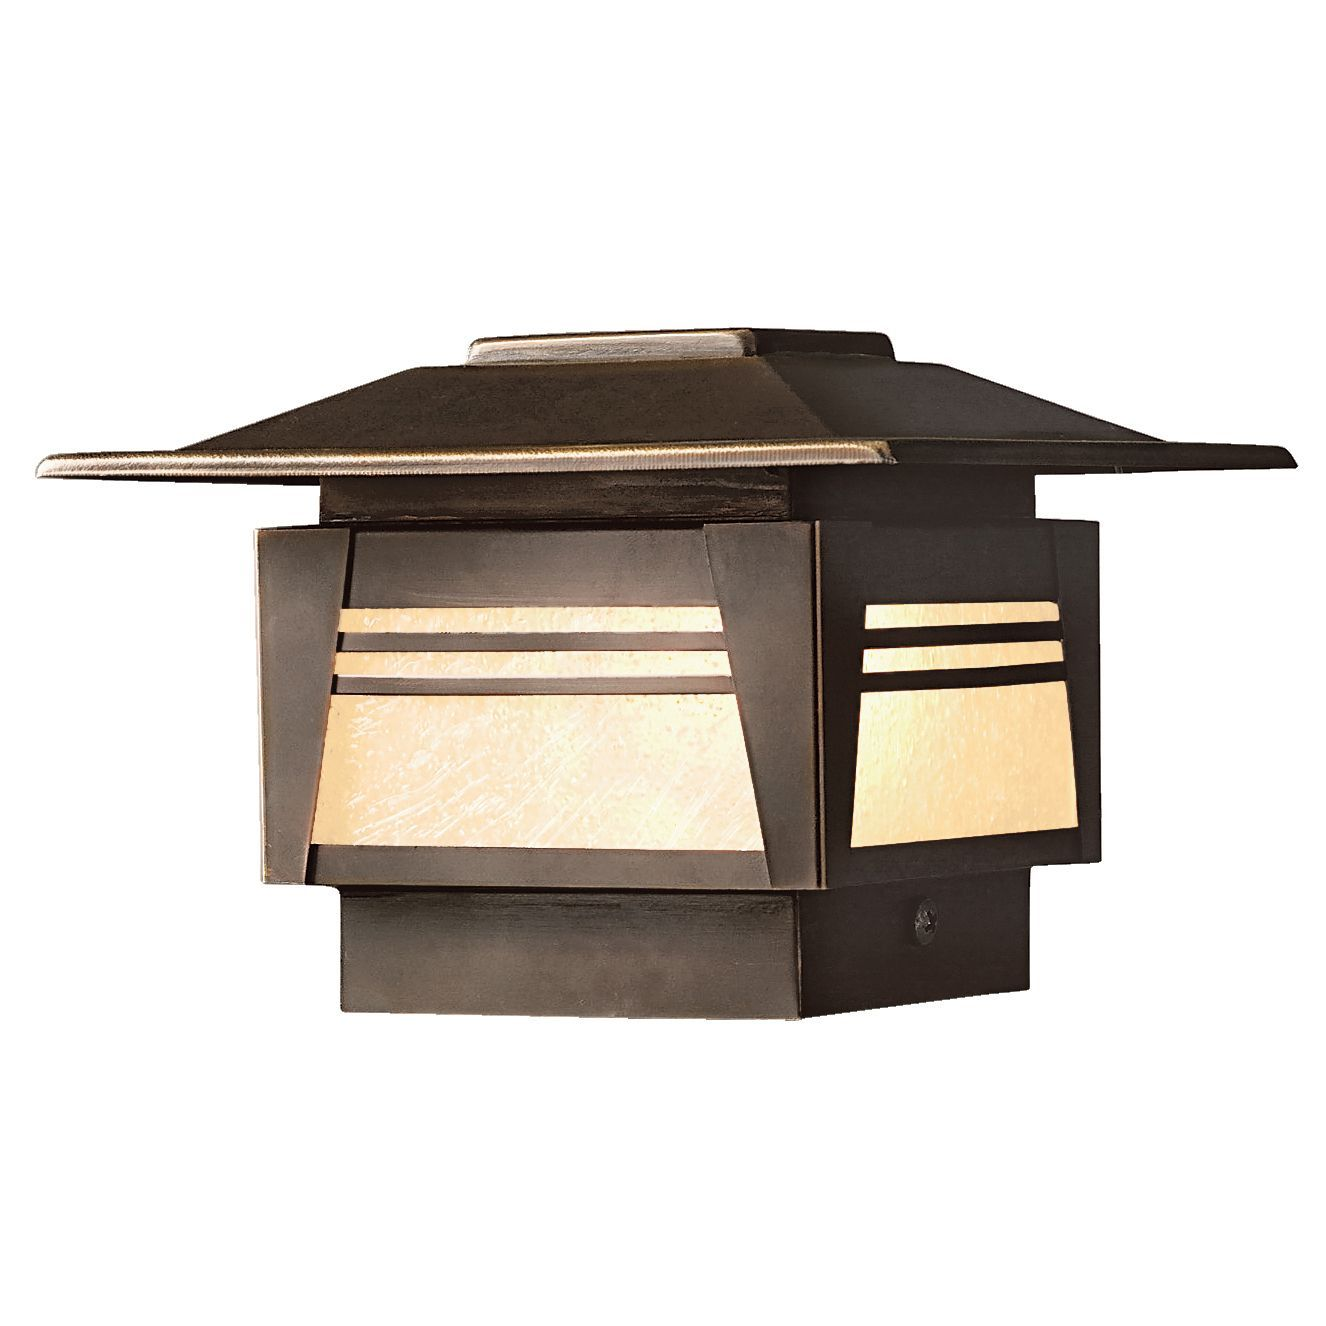 The Zen Garden Outdoor 12v Deck Post Light Features An Asian Inspired Minimalist Design For Subtle But Functional Deck Lighting Avai